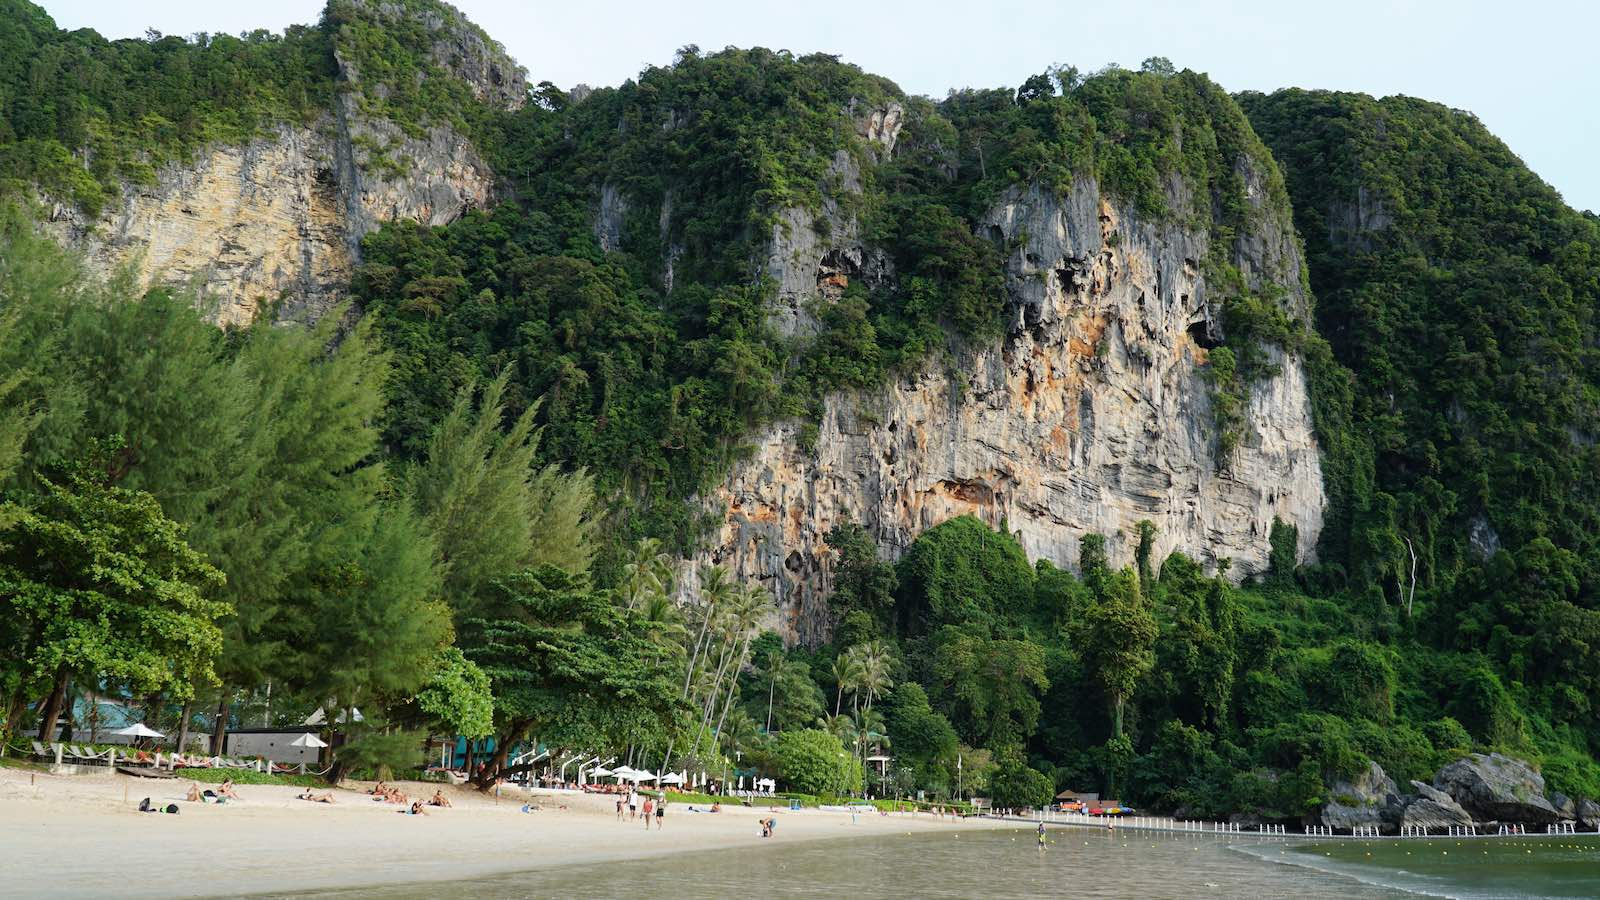 I spent my first day exploring the nearby beach and found a little path at one end that led me around one of these massive limestone cliffs to a much smaller and less crowded side beach.